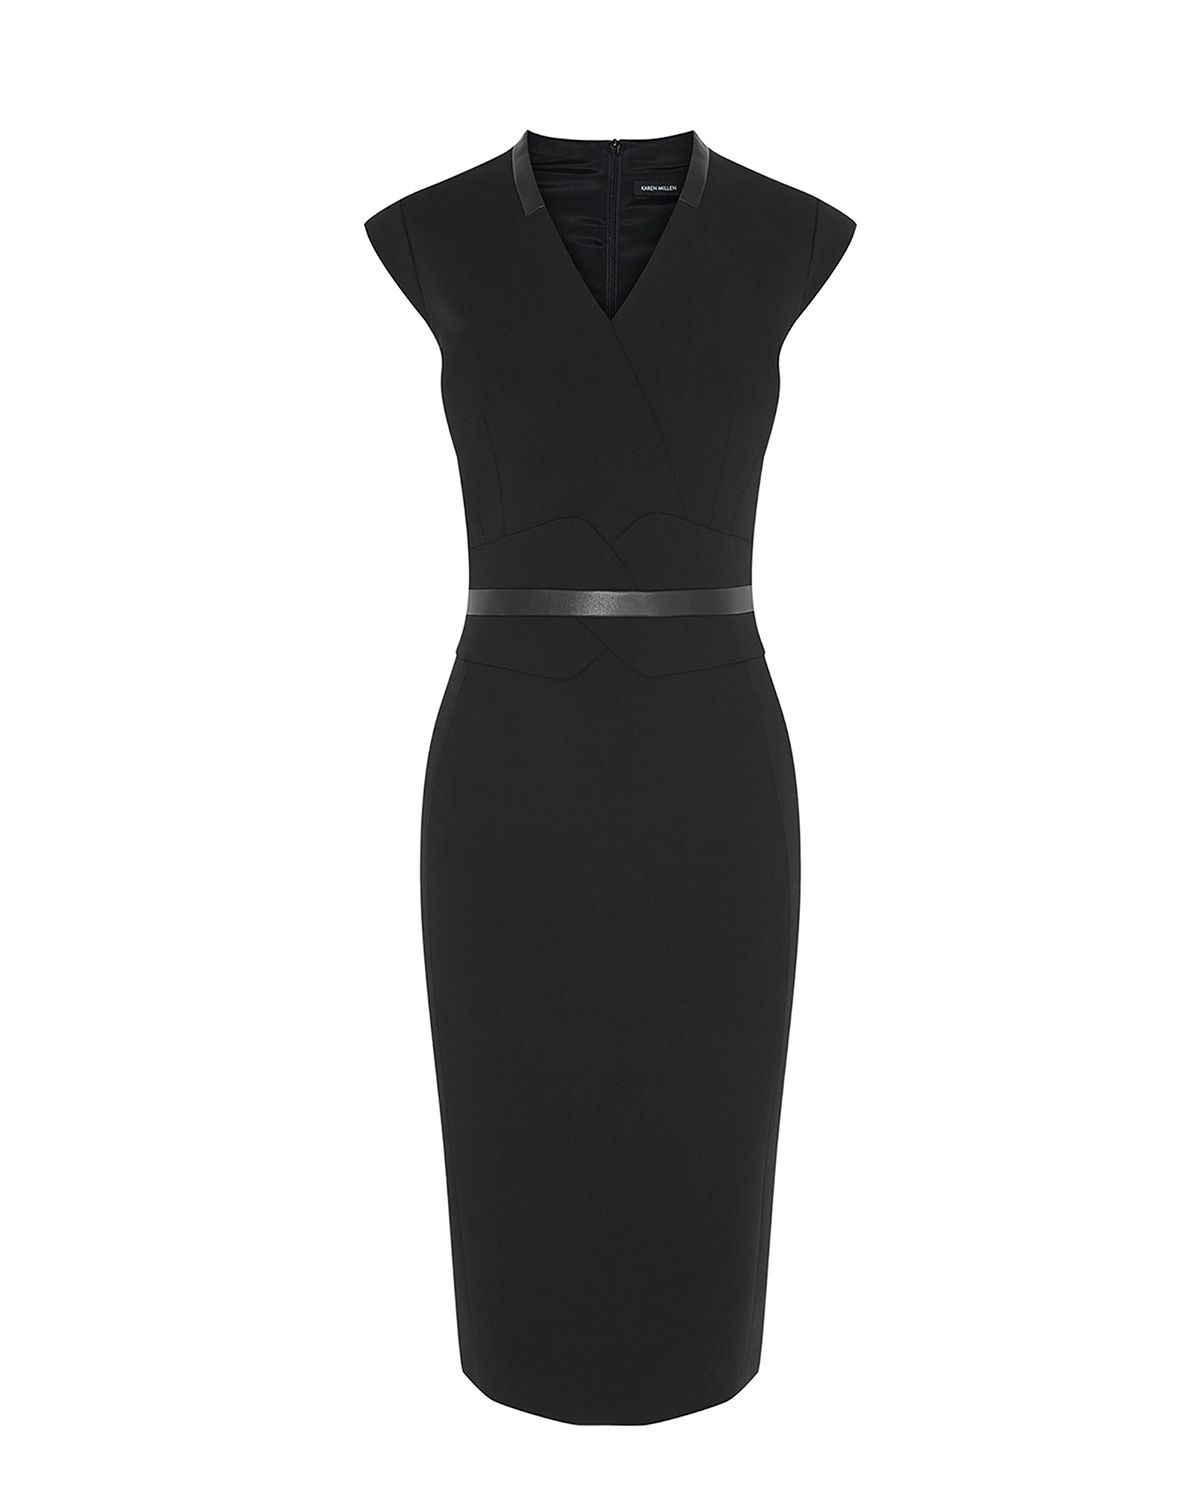 Karen Millen Contrast Waistbelt Dress, Black